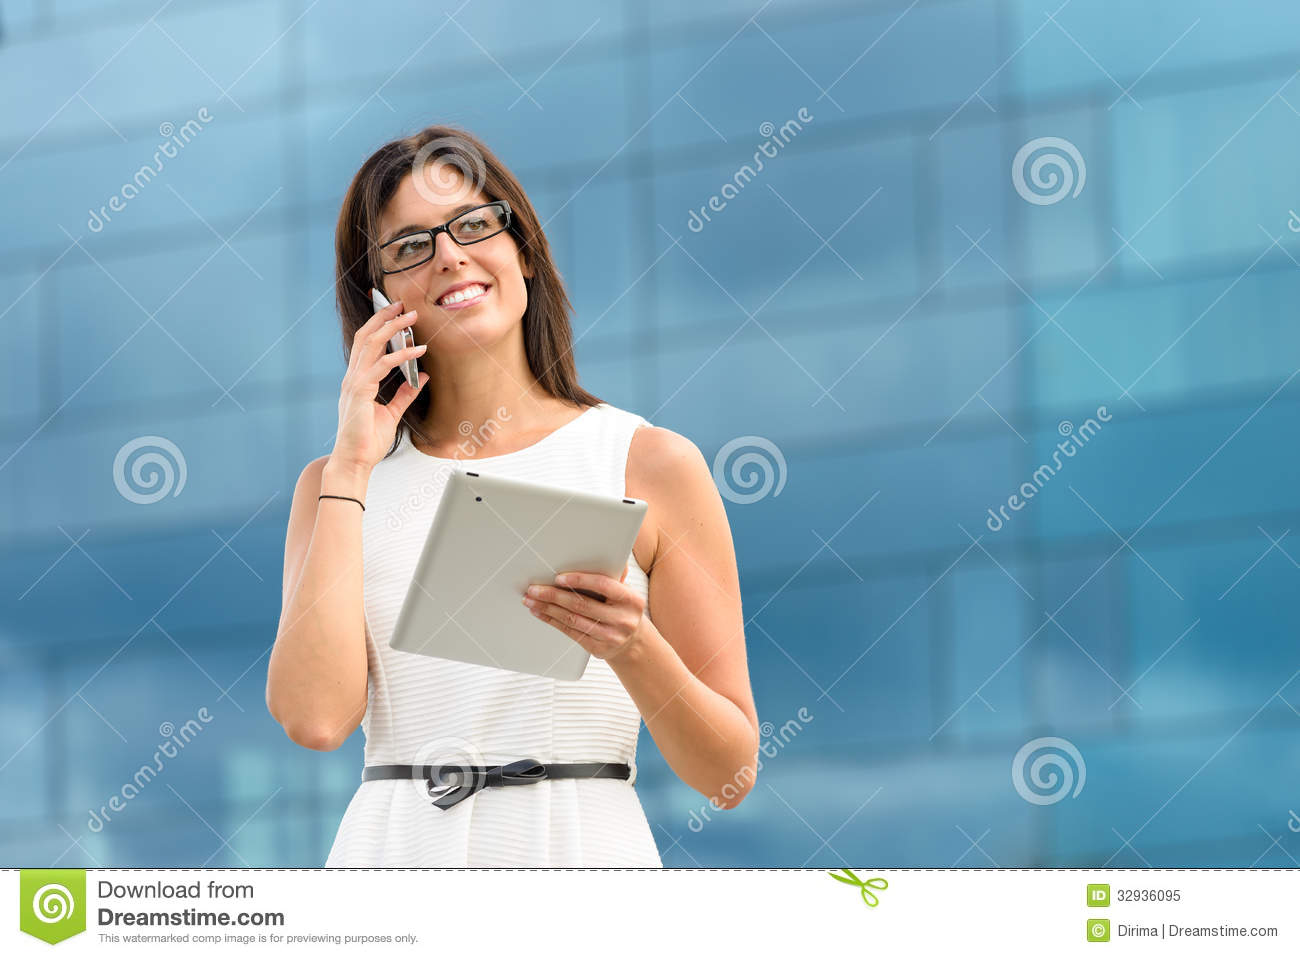 Business executive with tablet and phone